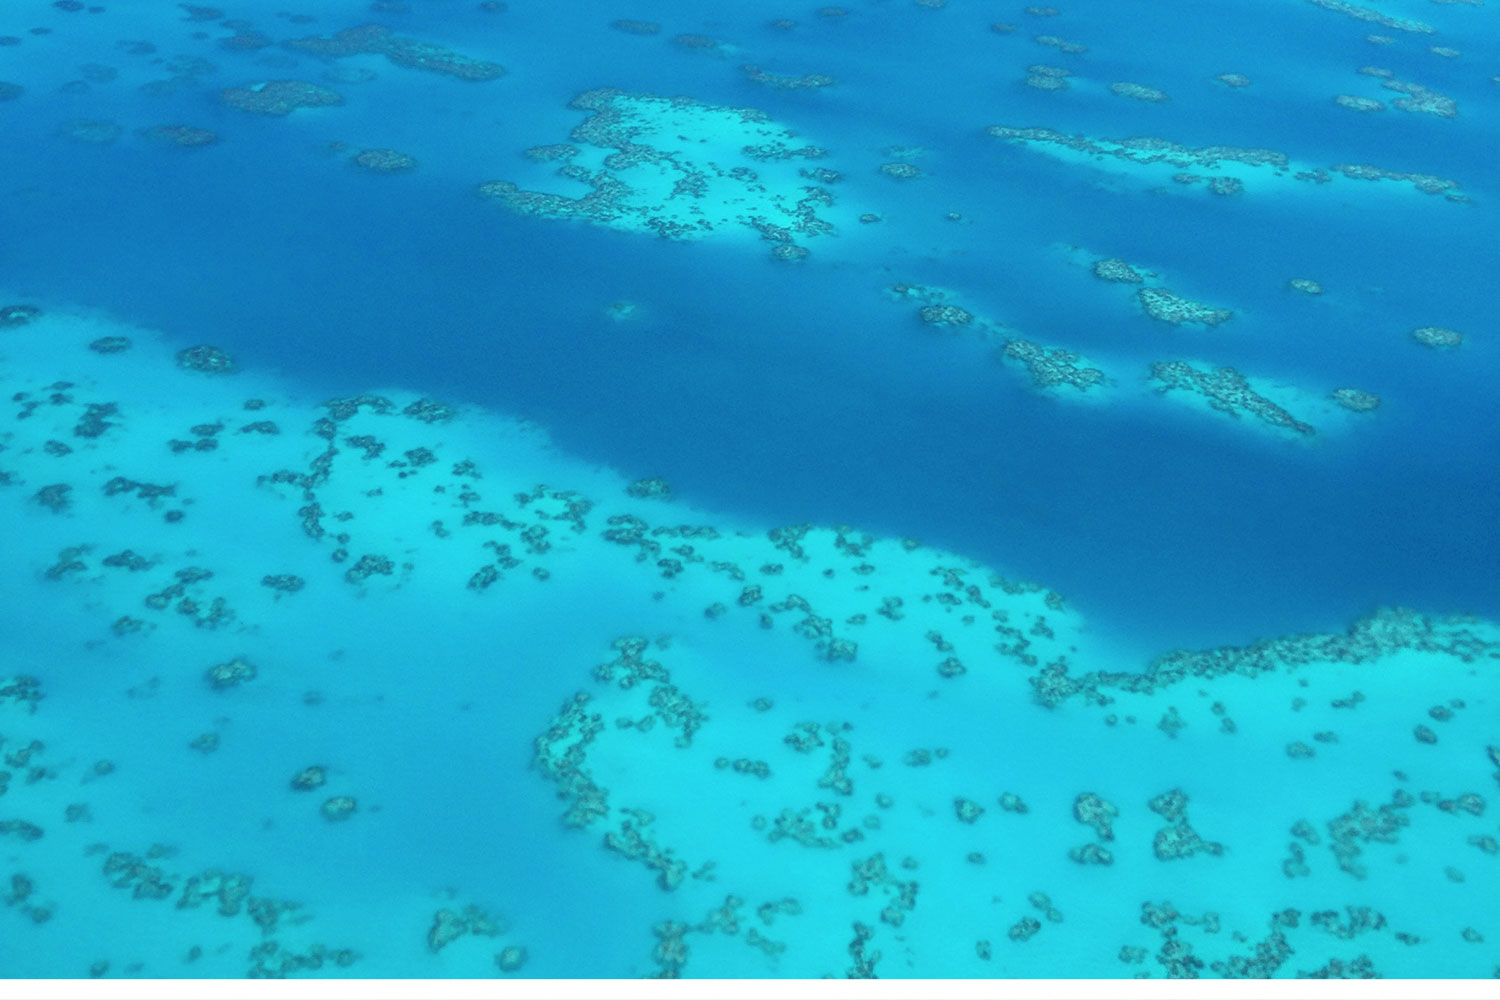 The flight into Bermuda sold us at first sight. The reefs were abundant and so beautiful, but home to many shipwrecks. Ever wonder why they call the Bermuda Triangle the Bermuda Triangle? Aside from the tales, the reefs were most likely the problem.